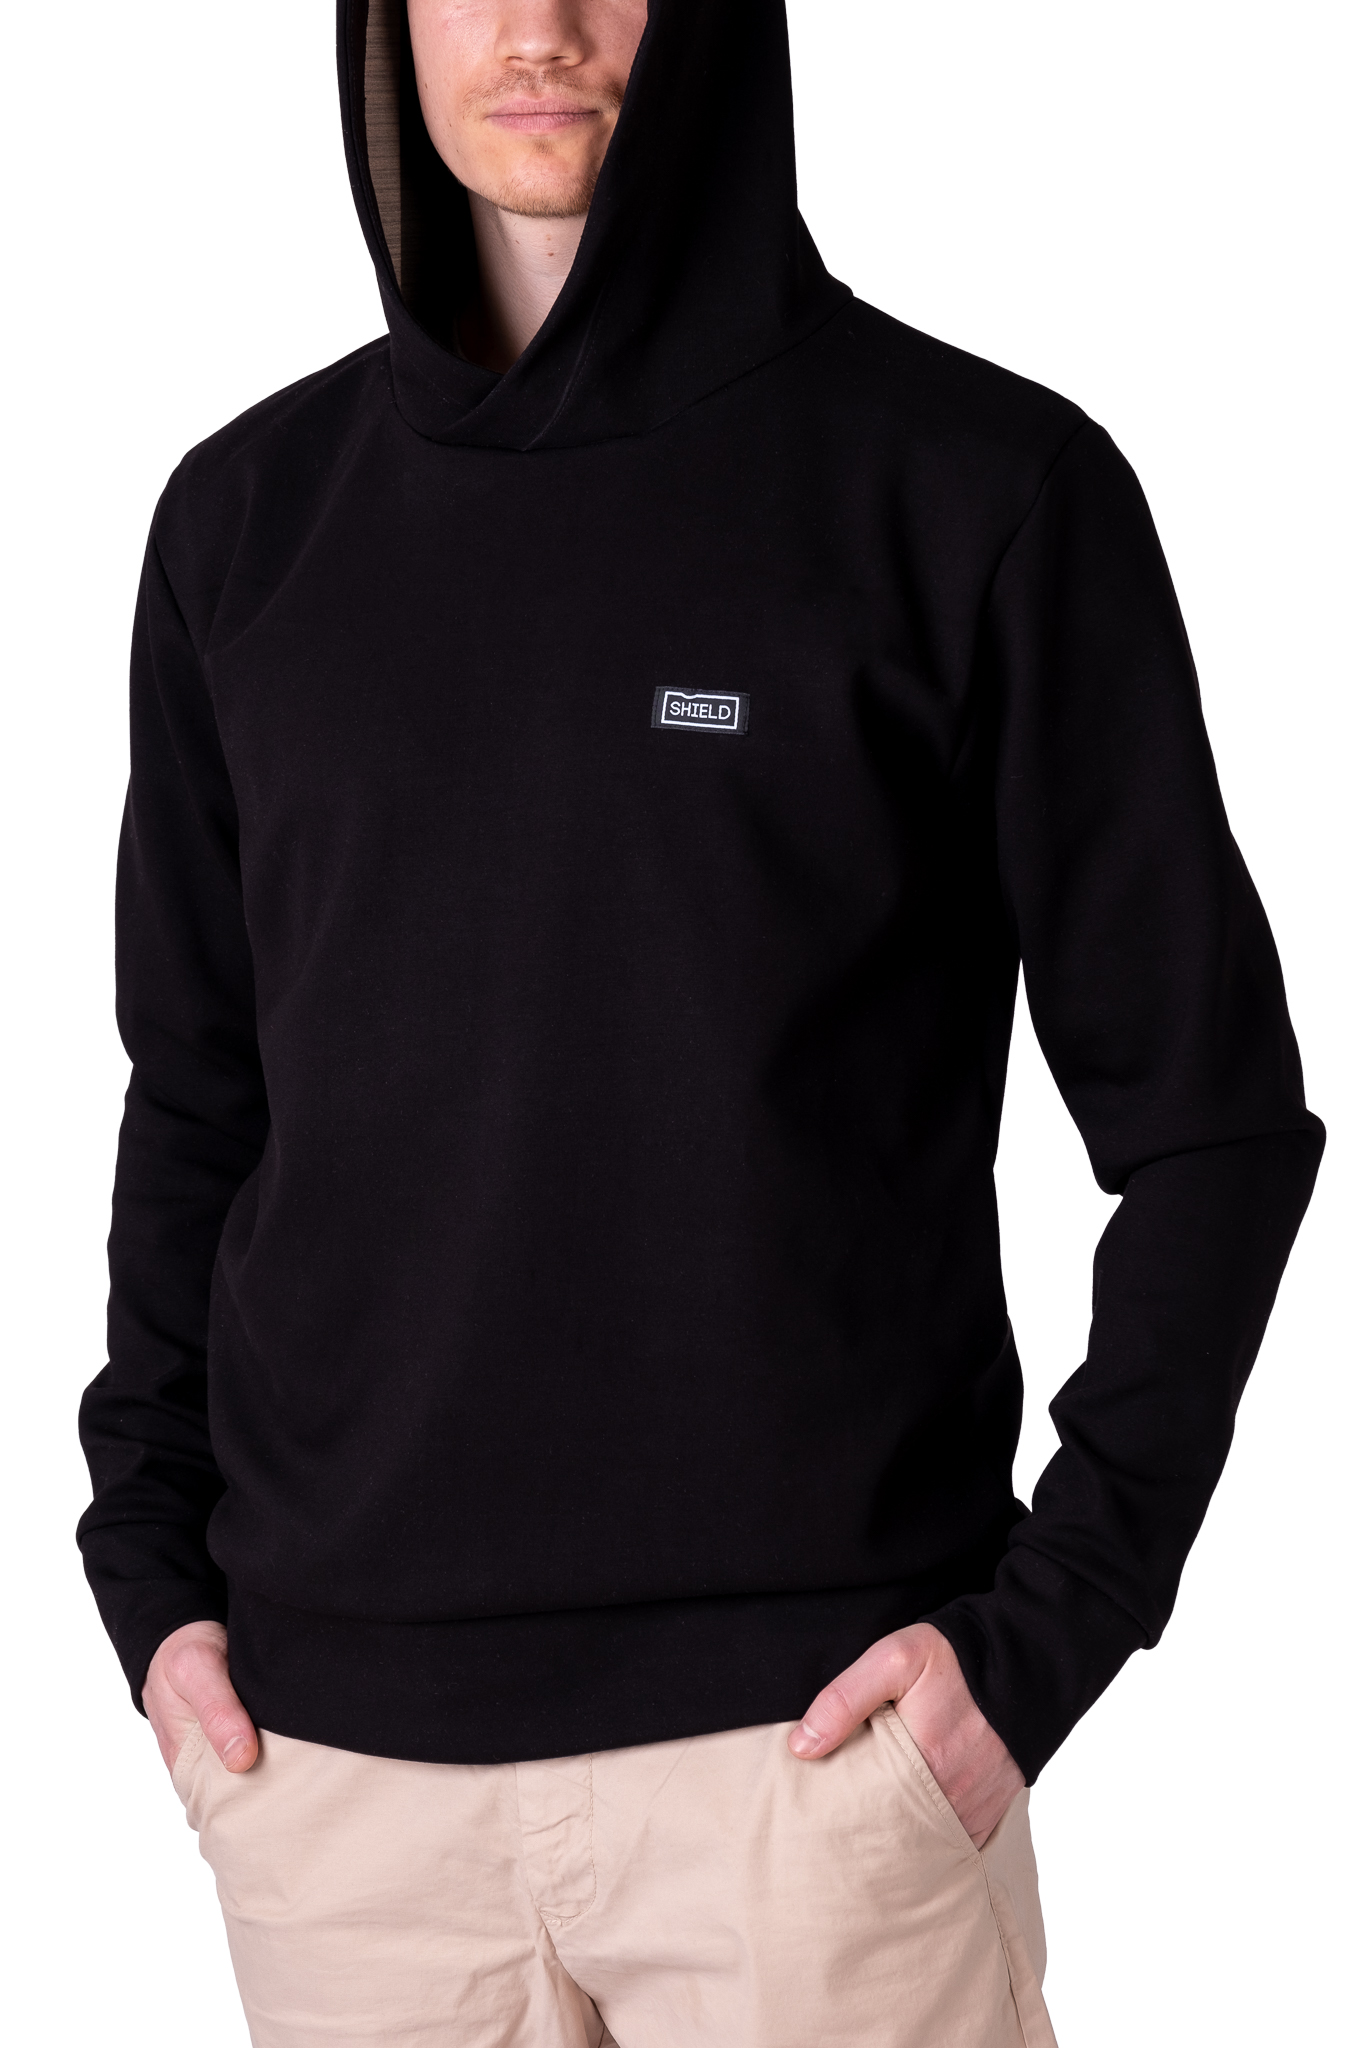 Signal-blocking sweatshirt